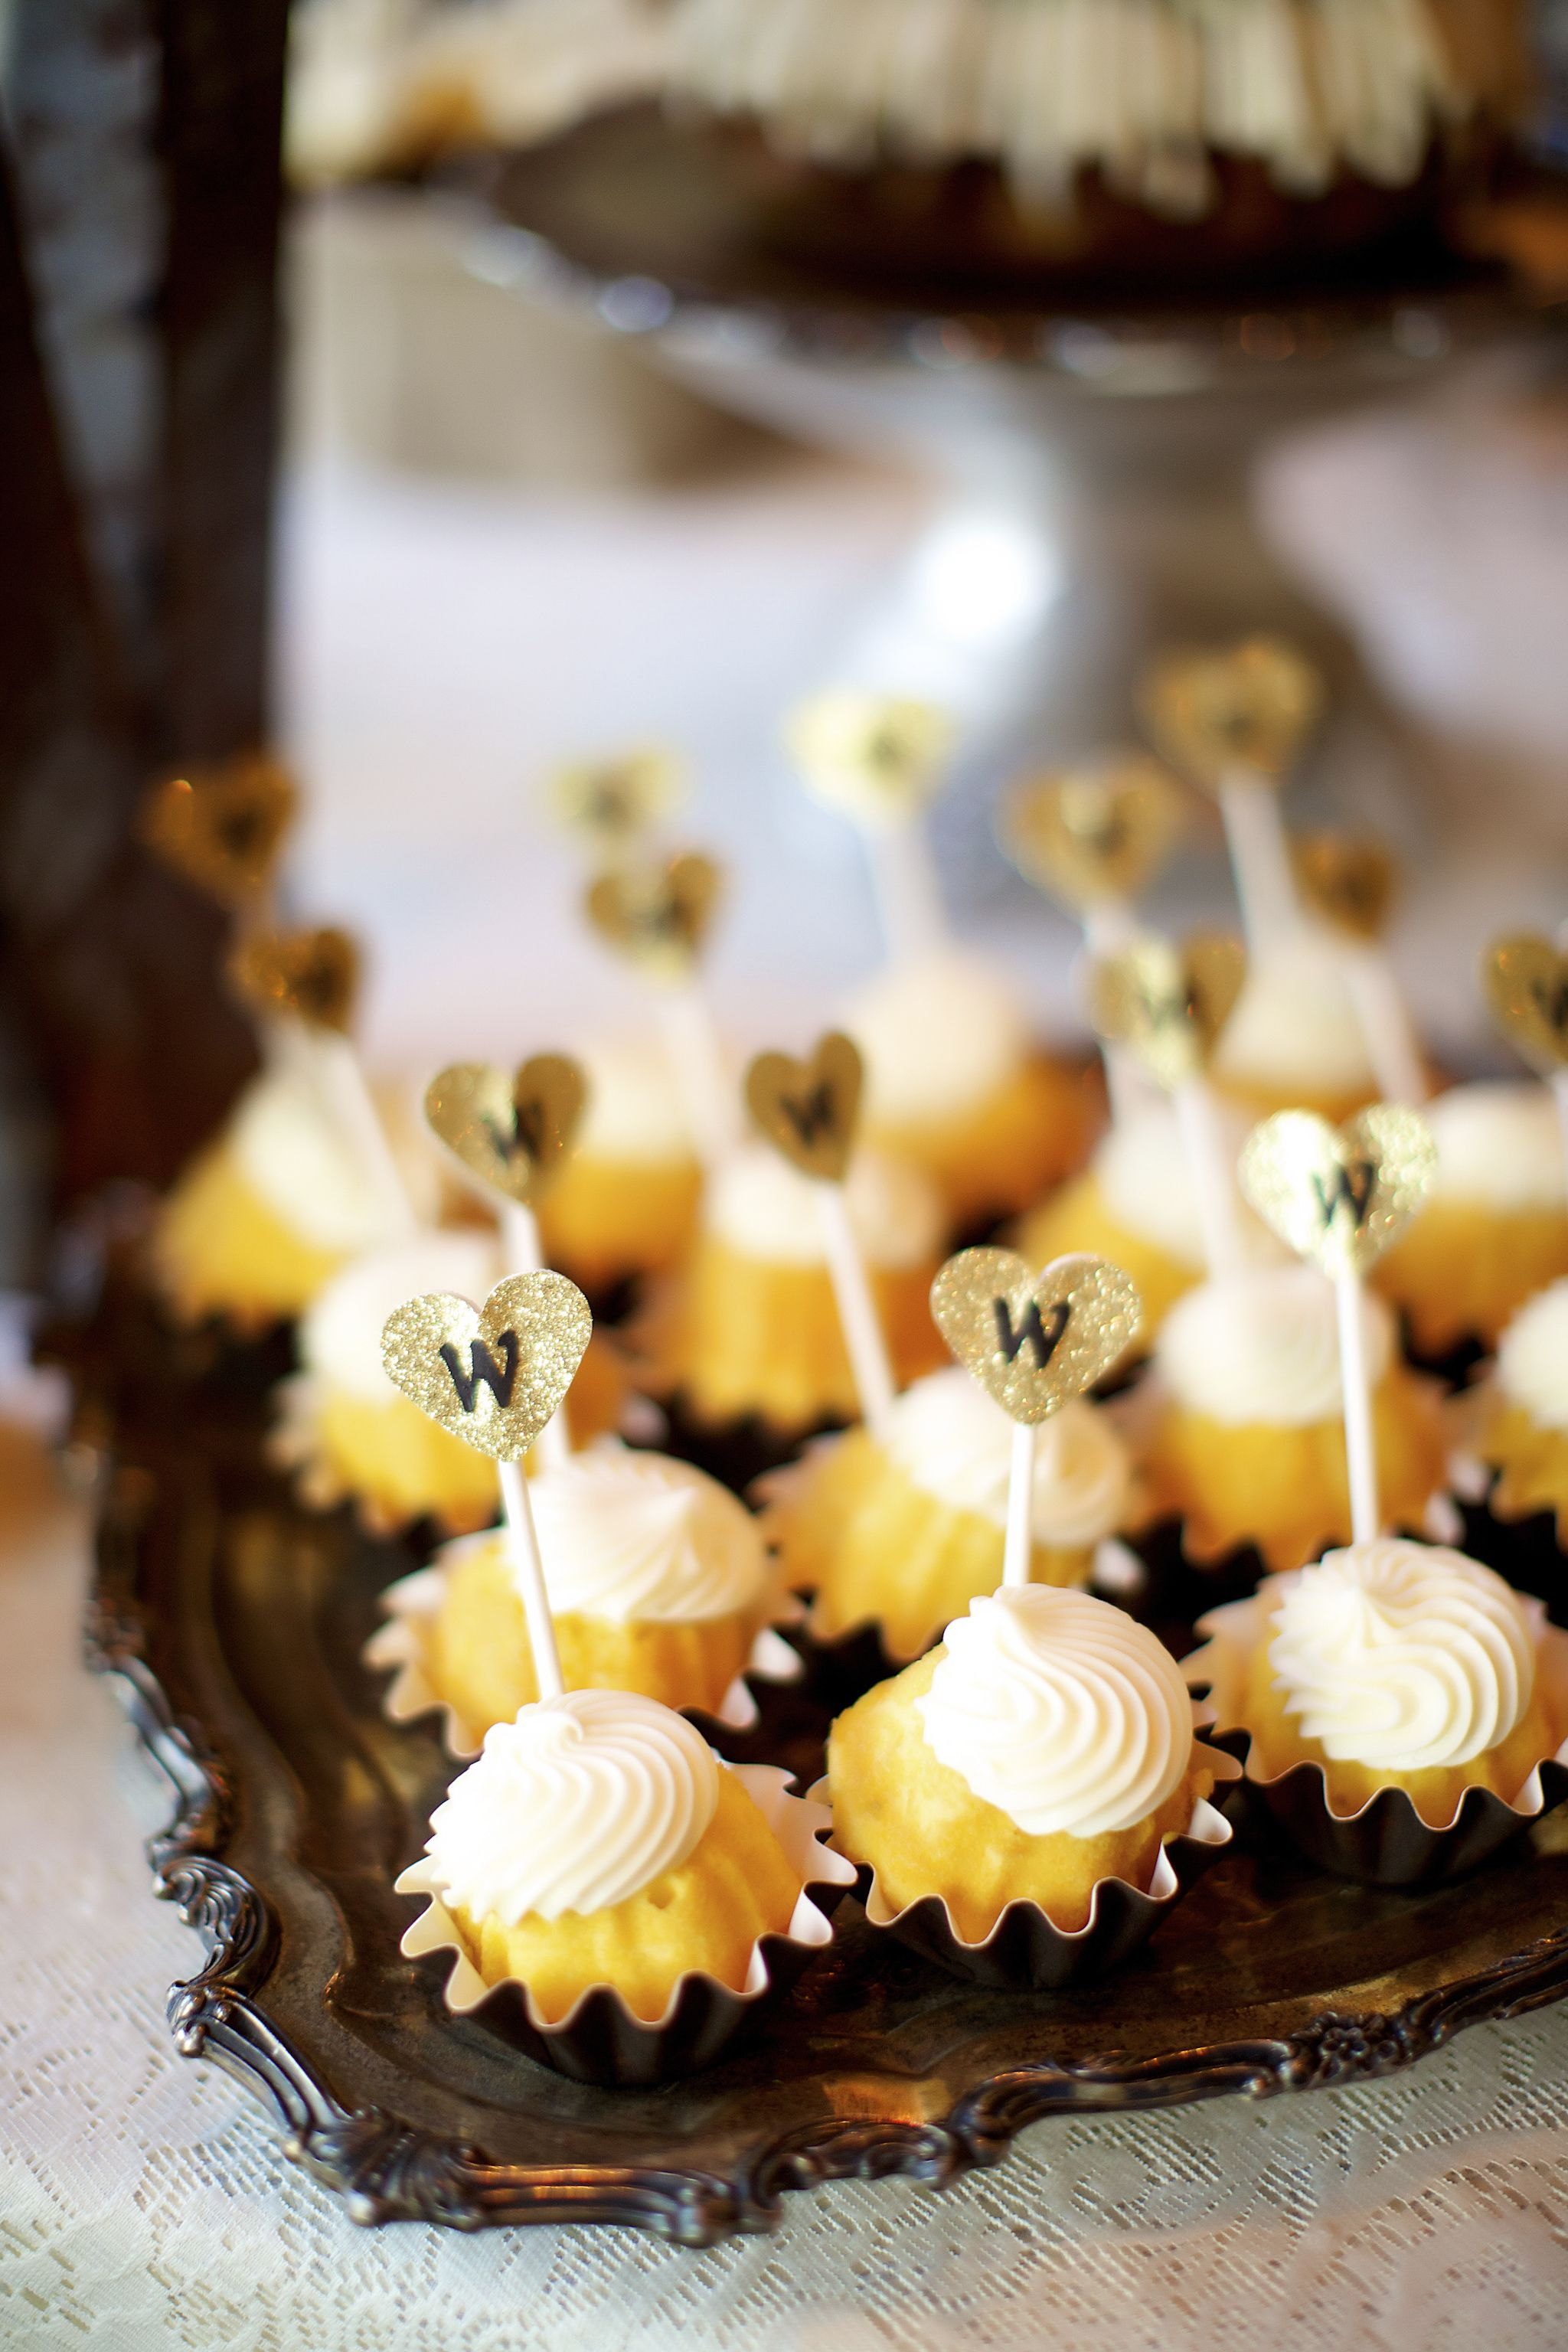 Pin by Stephanie Wellman on Our Wedding ️ Nothing bundt